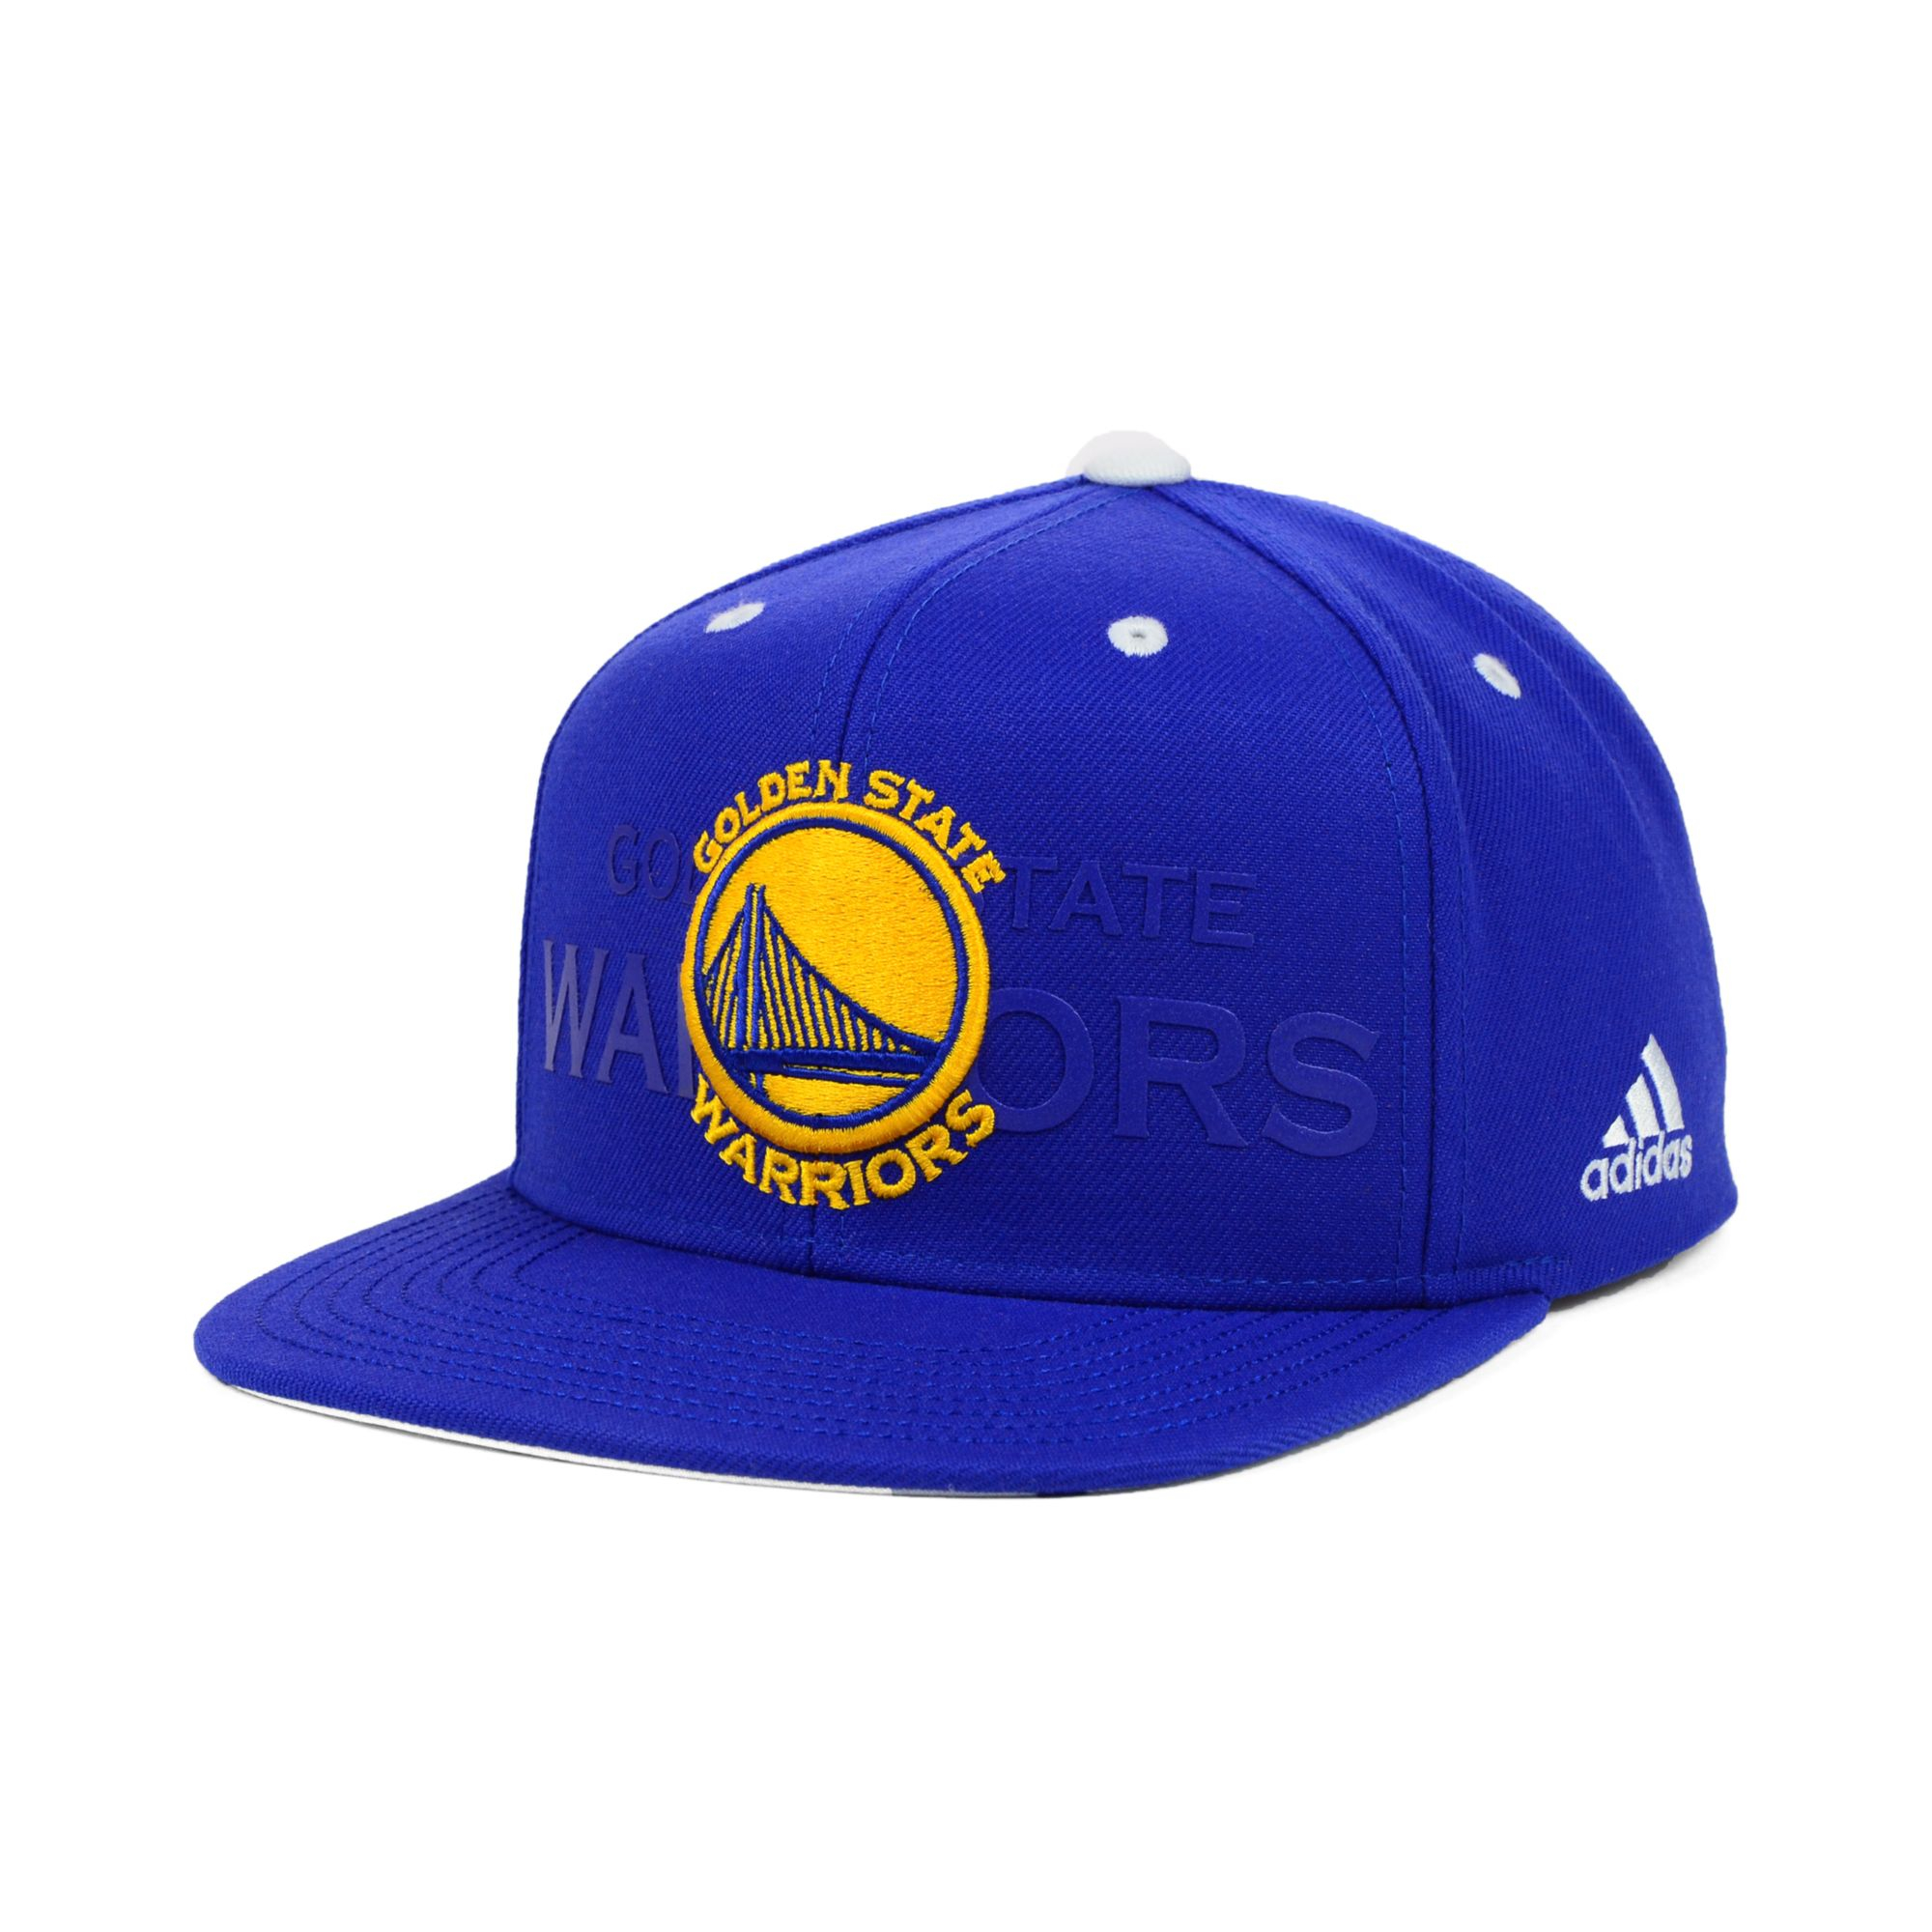 ... sweden lyst adidas golden state warriors nba draft snapback cap in blue  95066 88790 ... 2c5f2f33fb33